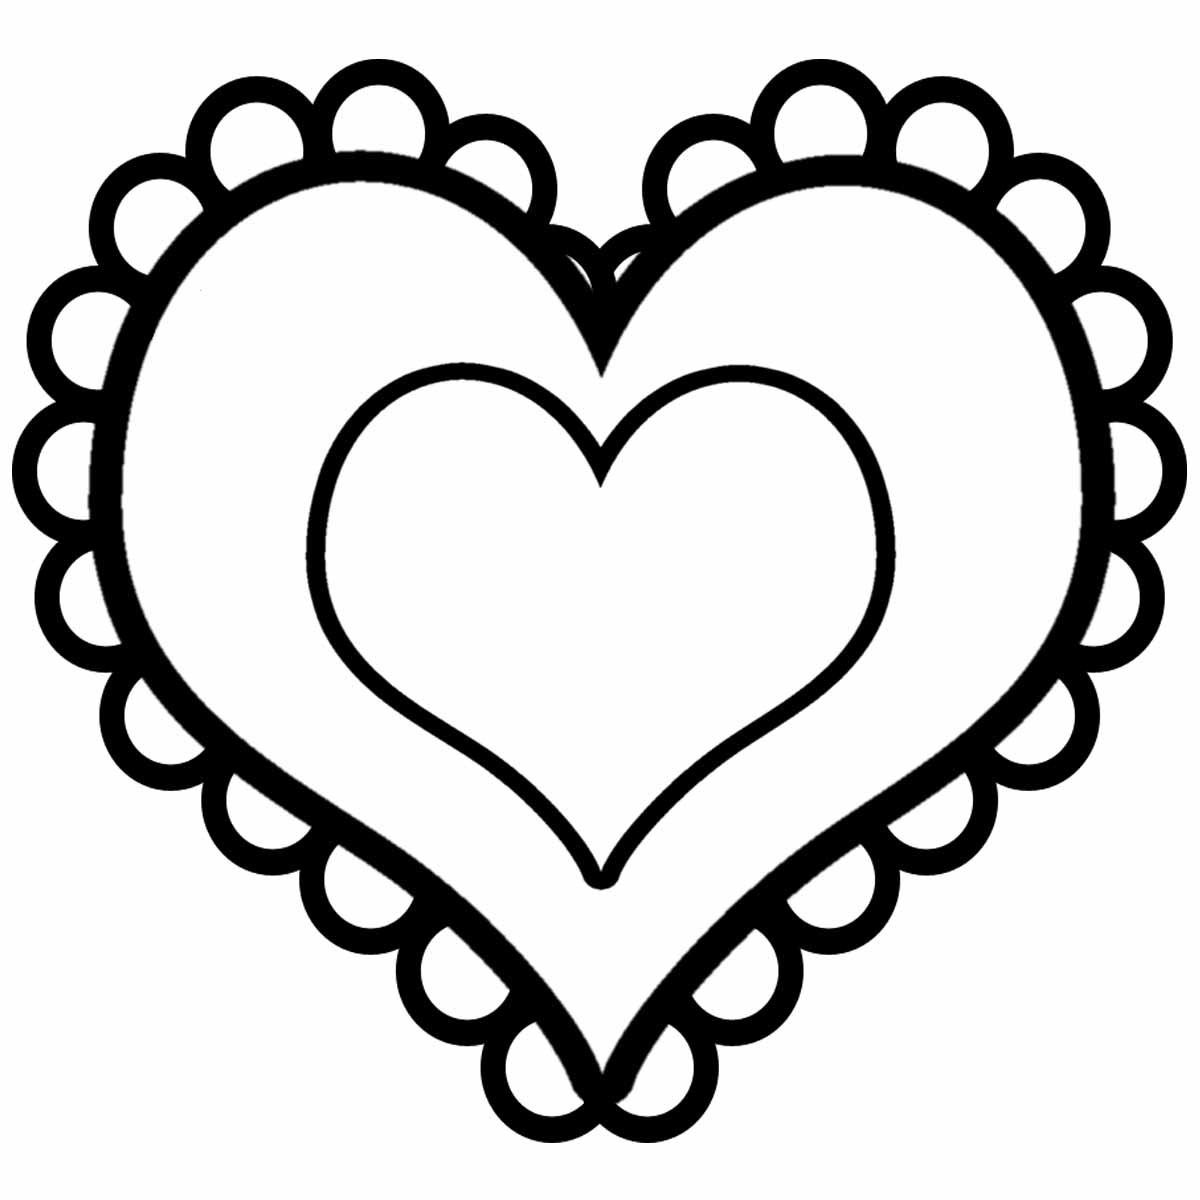 Free Printable Heart Coloring Pages For Kids Coloring Pages With Hearts